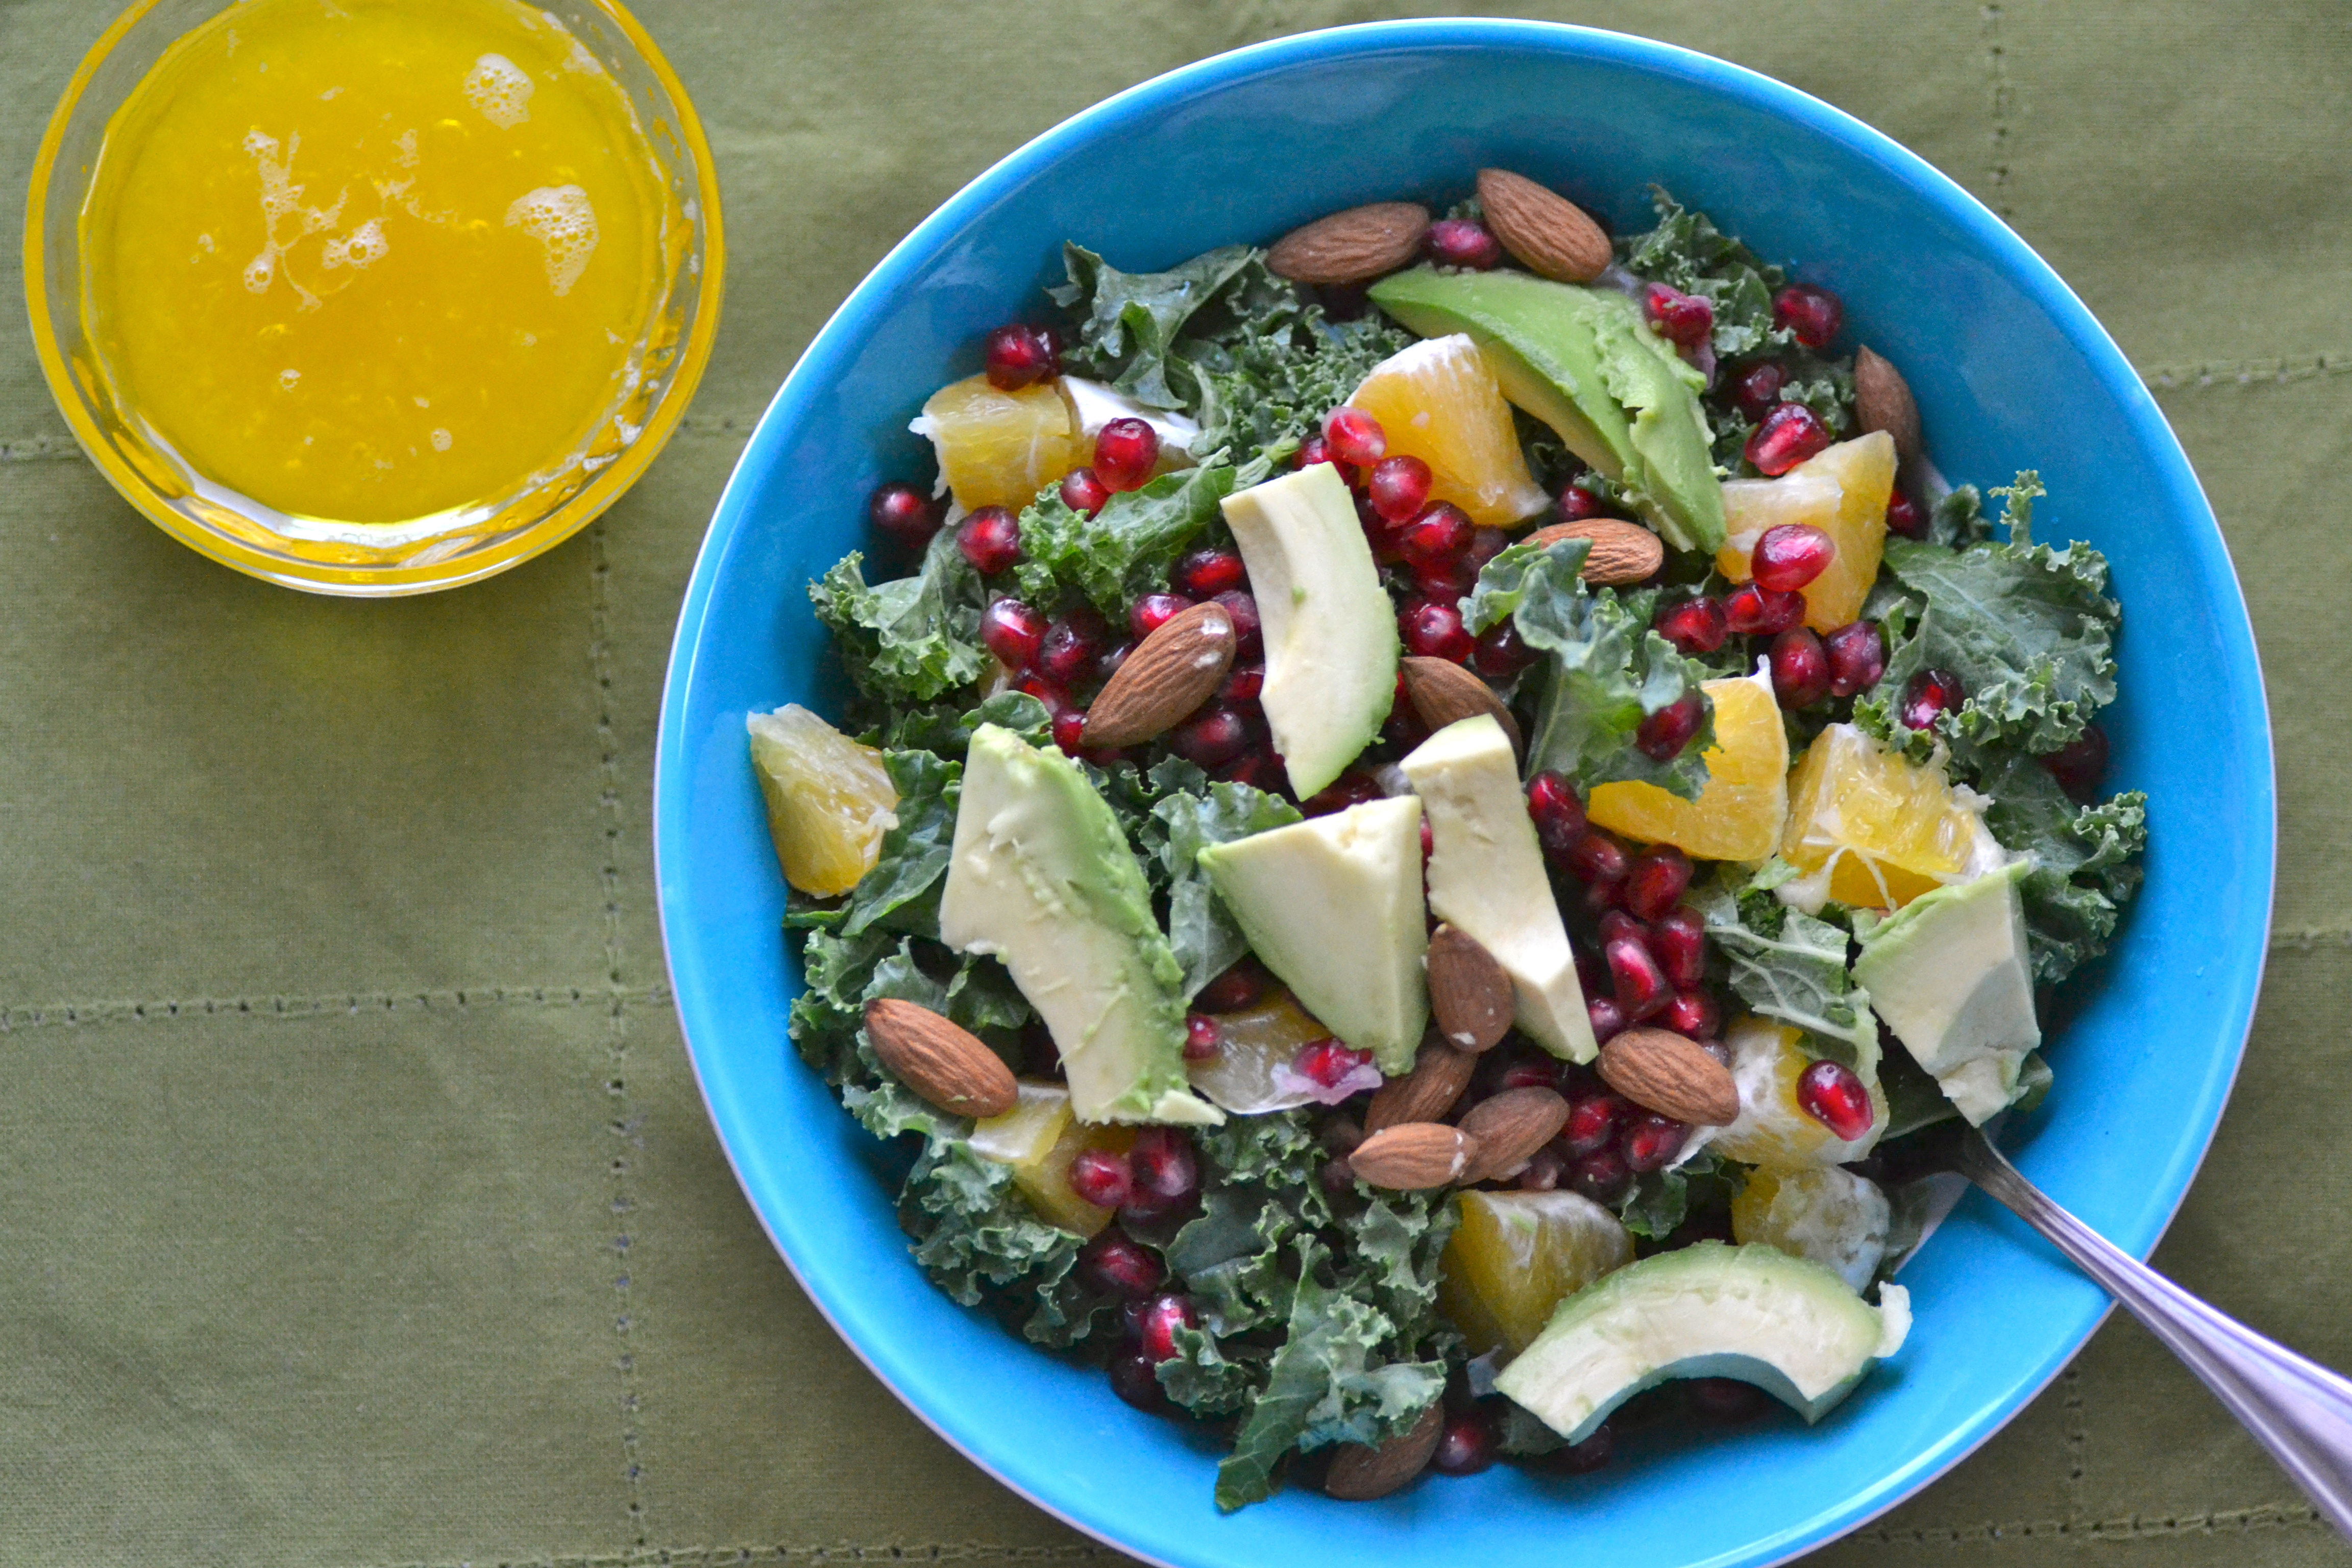 Sowing the Seeds of Health Salad